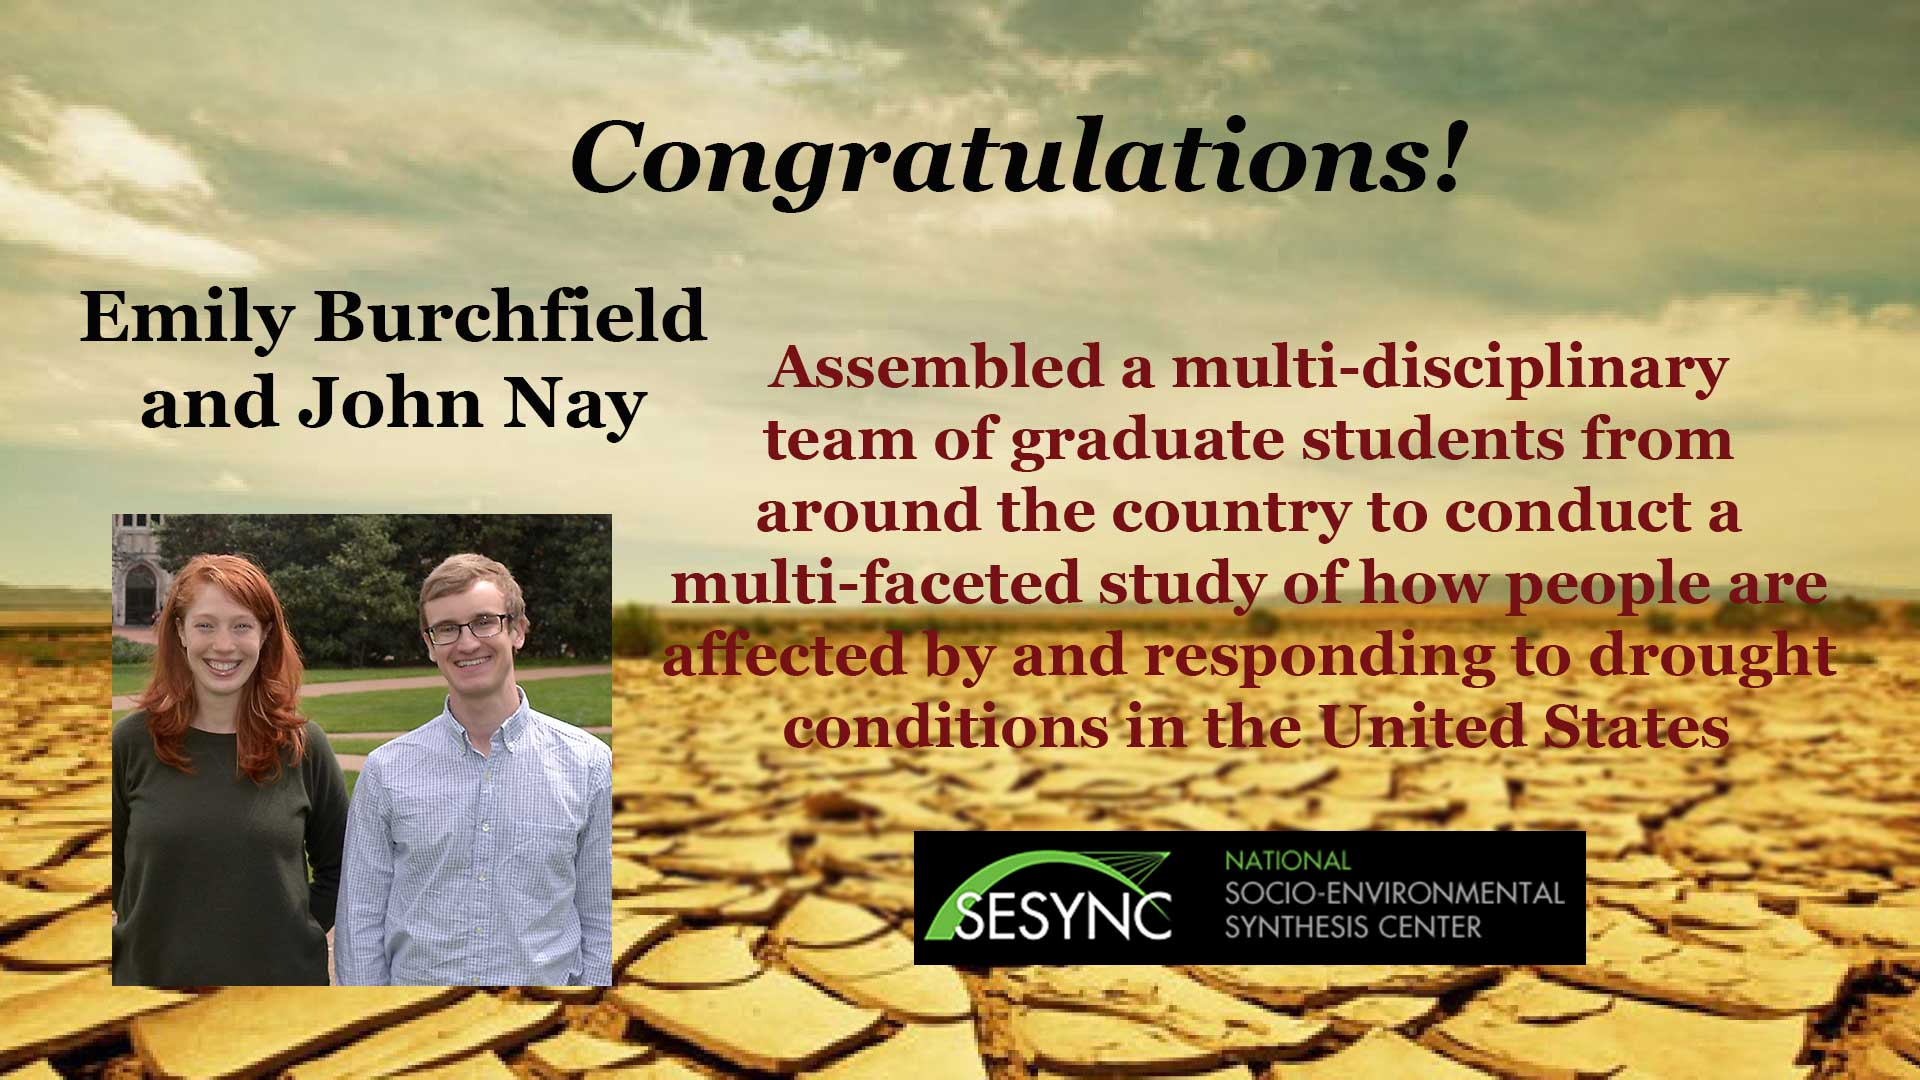 Burchfield & Nay - Drought